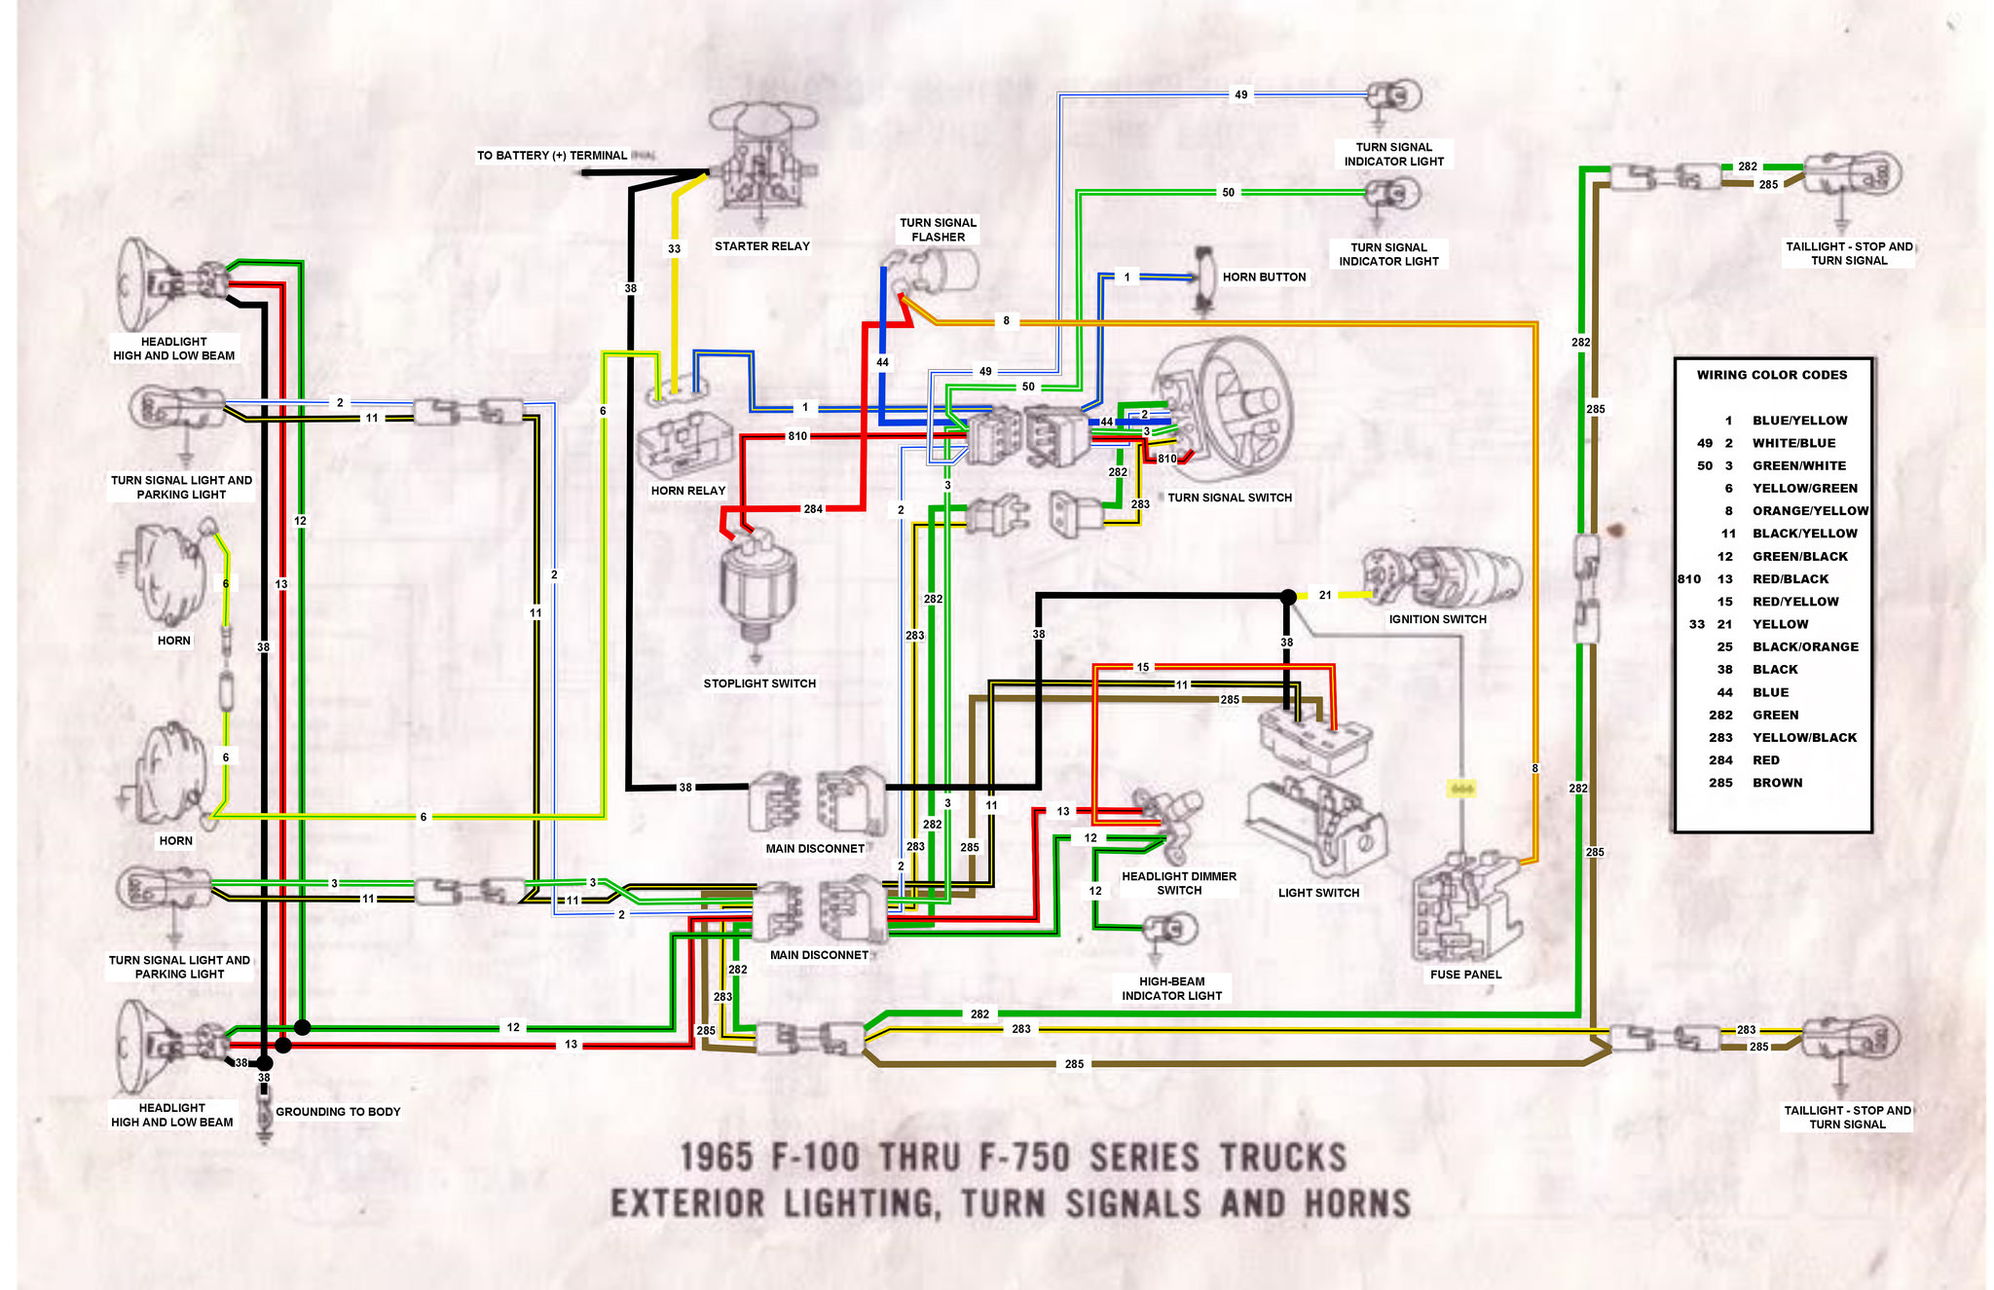 hn51kc024 wiring diagram   24 wiring diagram images